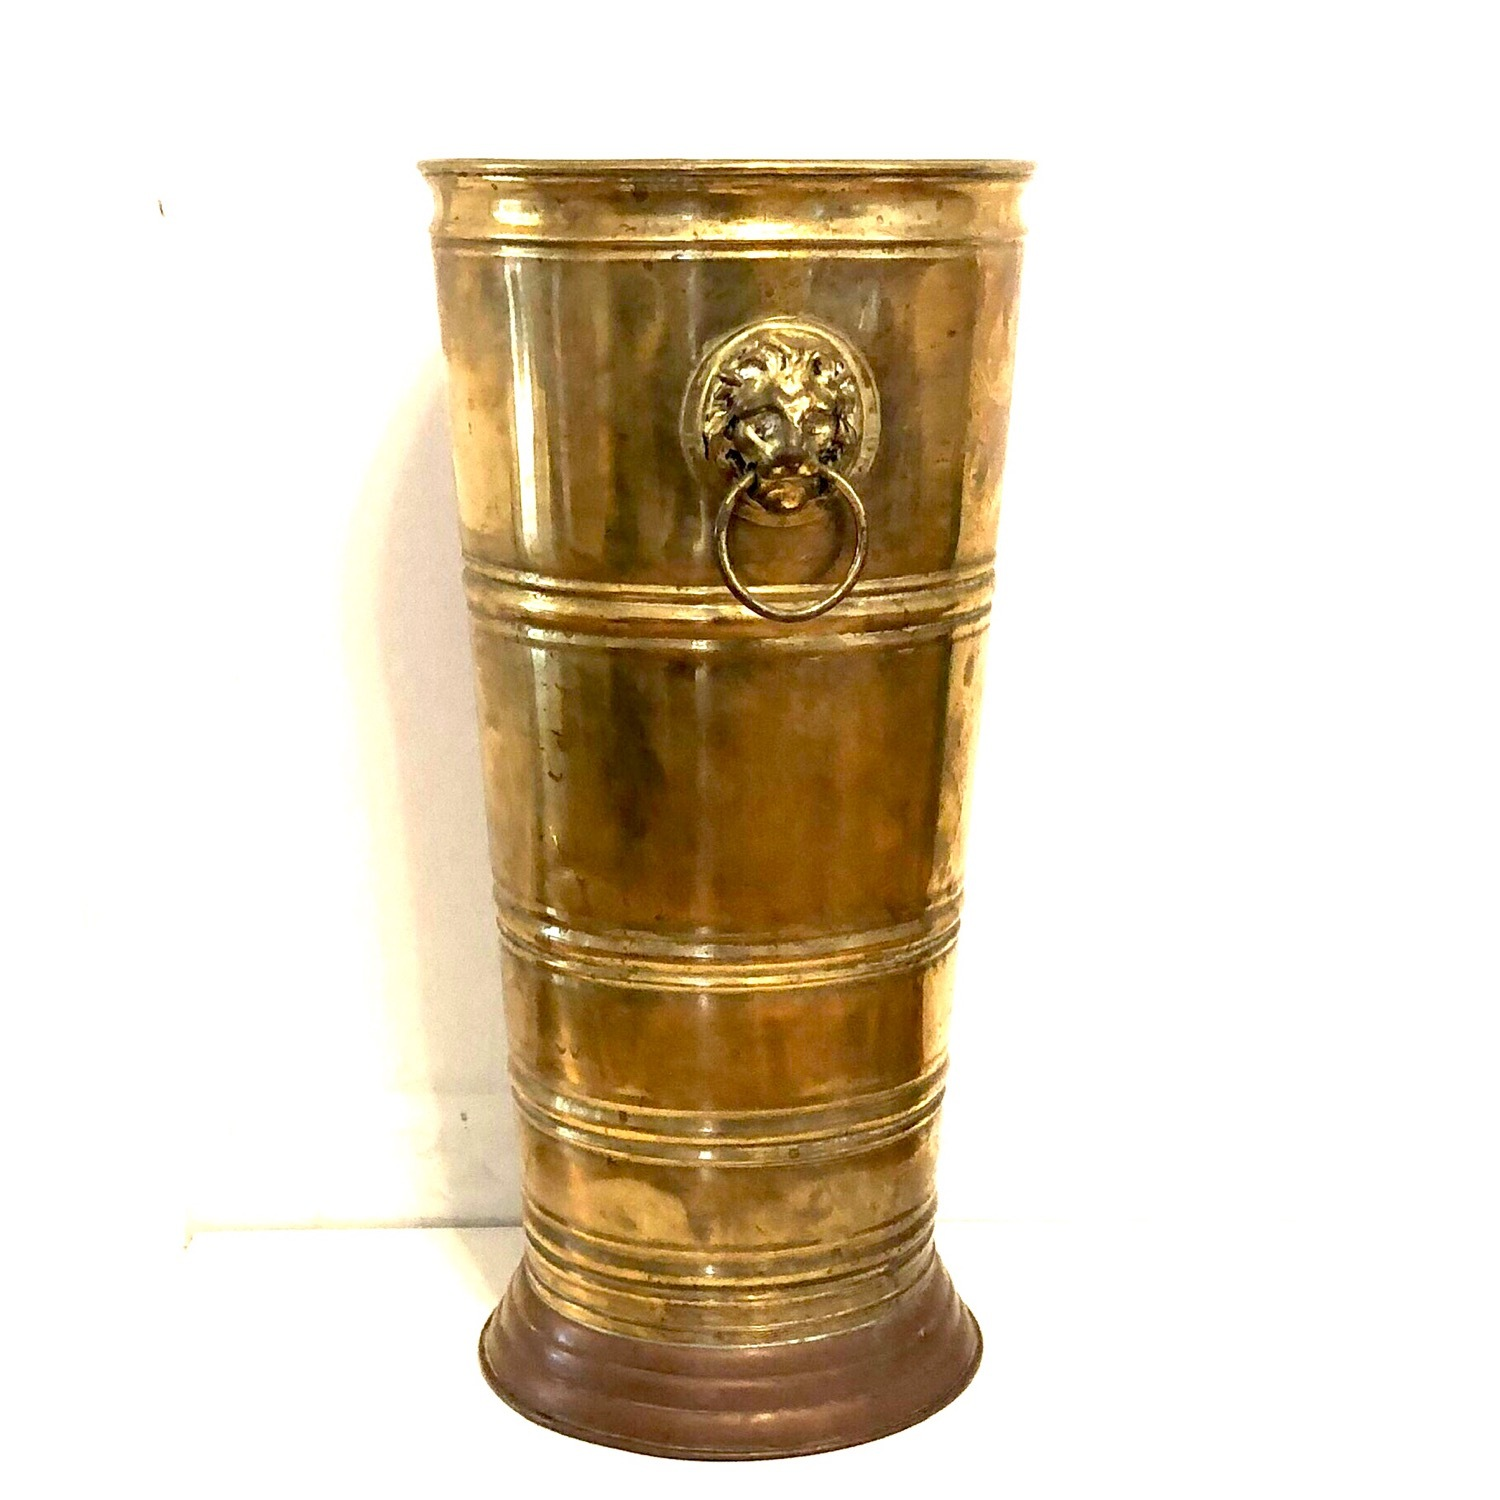 Brass Umbrella Cane Stand with Lion Heads - image-1